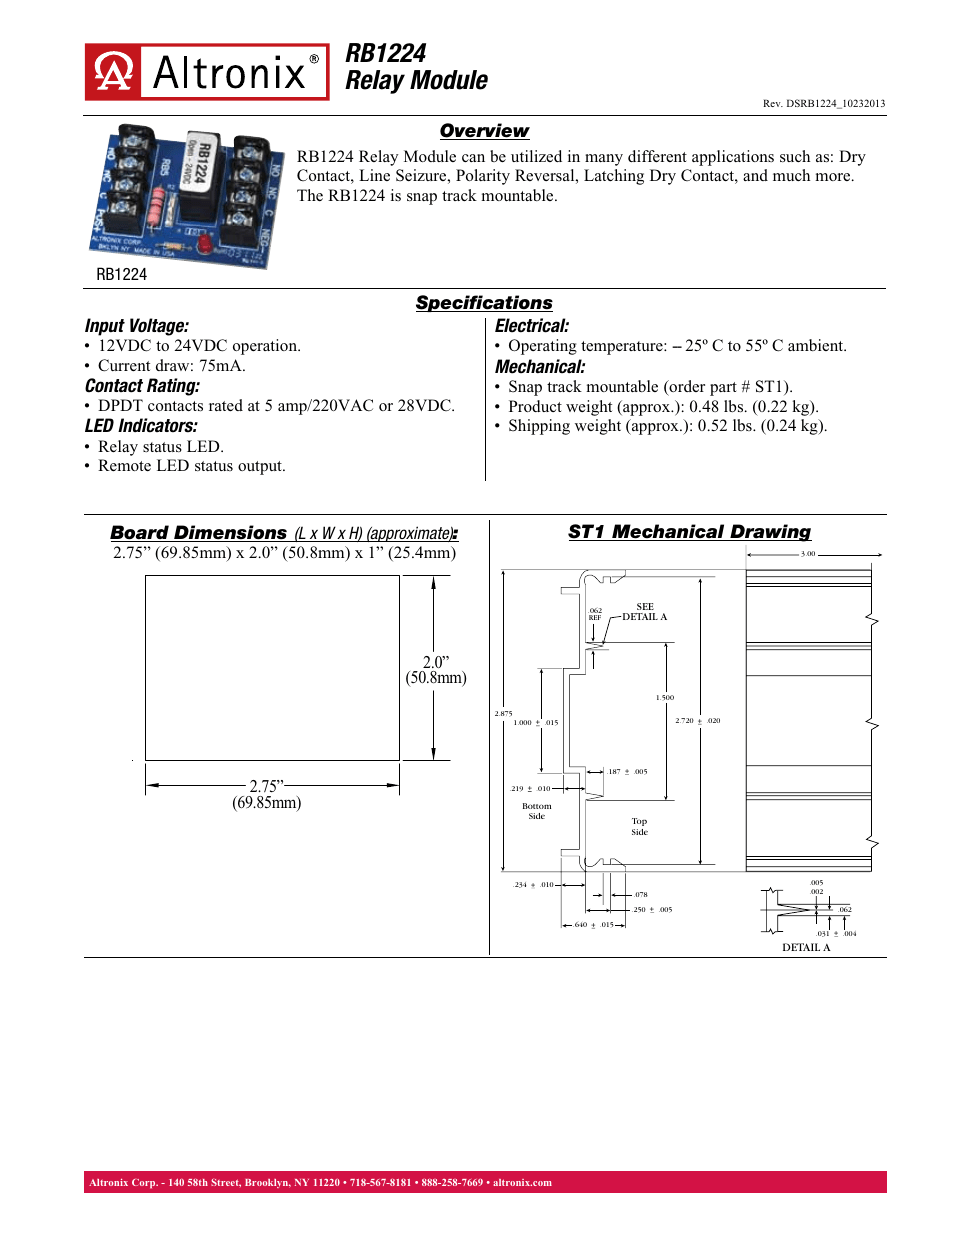 medium resolution of altronix relays wiring diagrams wiring diagram world altronix rb5 wiring diagram wiring diagram technic altronix relay